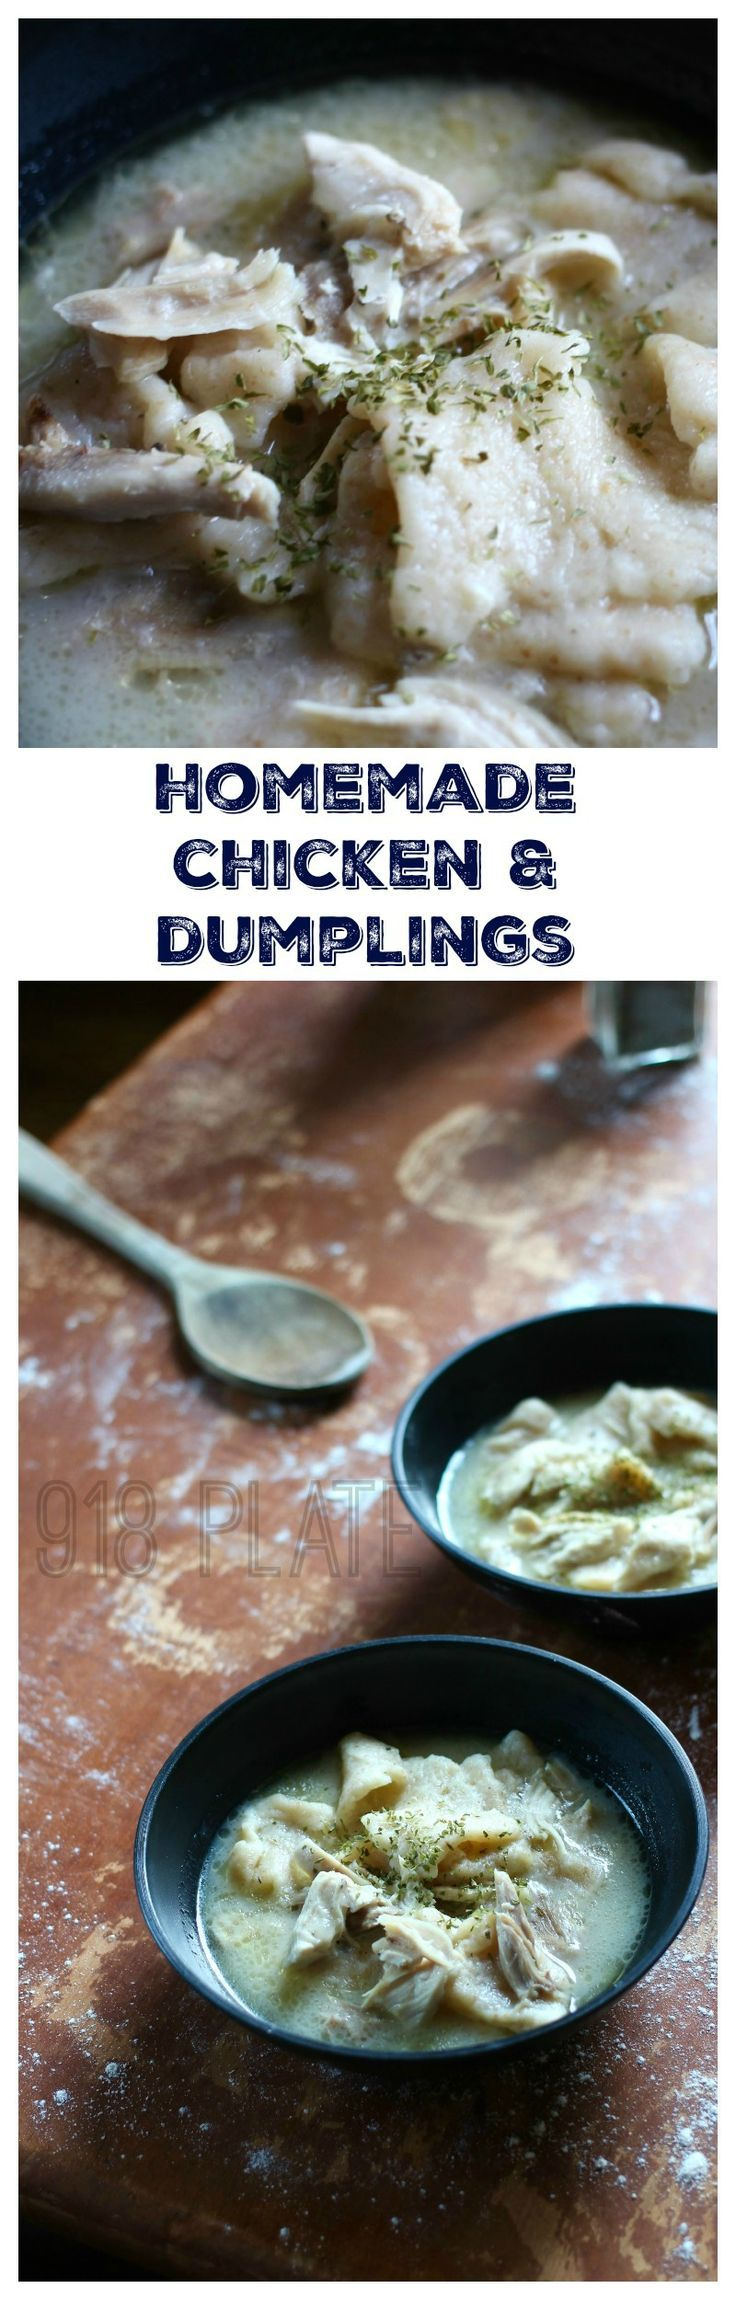 Cracker Barrel Lookalikes: Chicken and Dumplings at home - made with local, pastured chicken! via 918 Plate